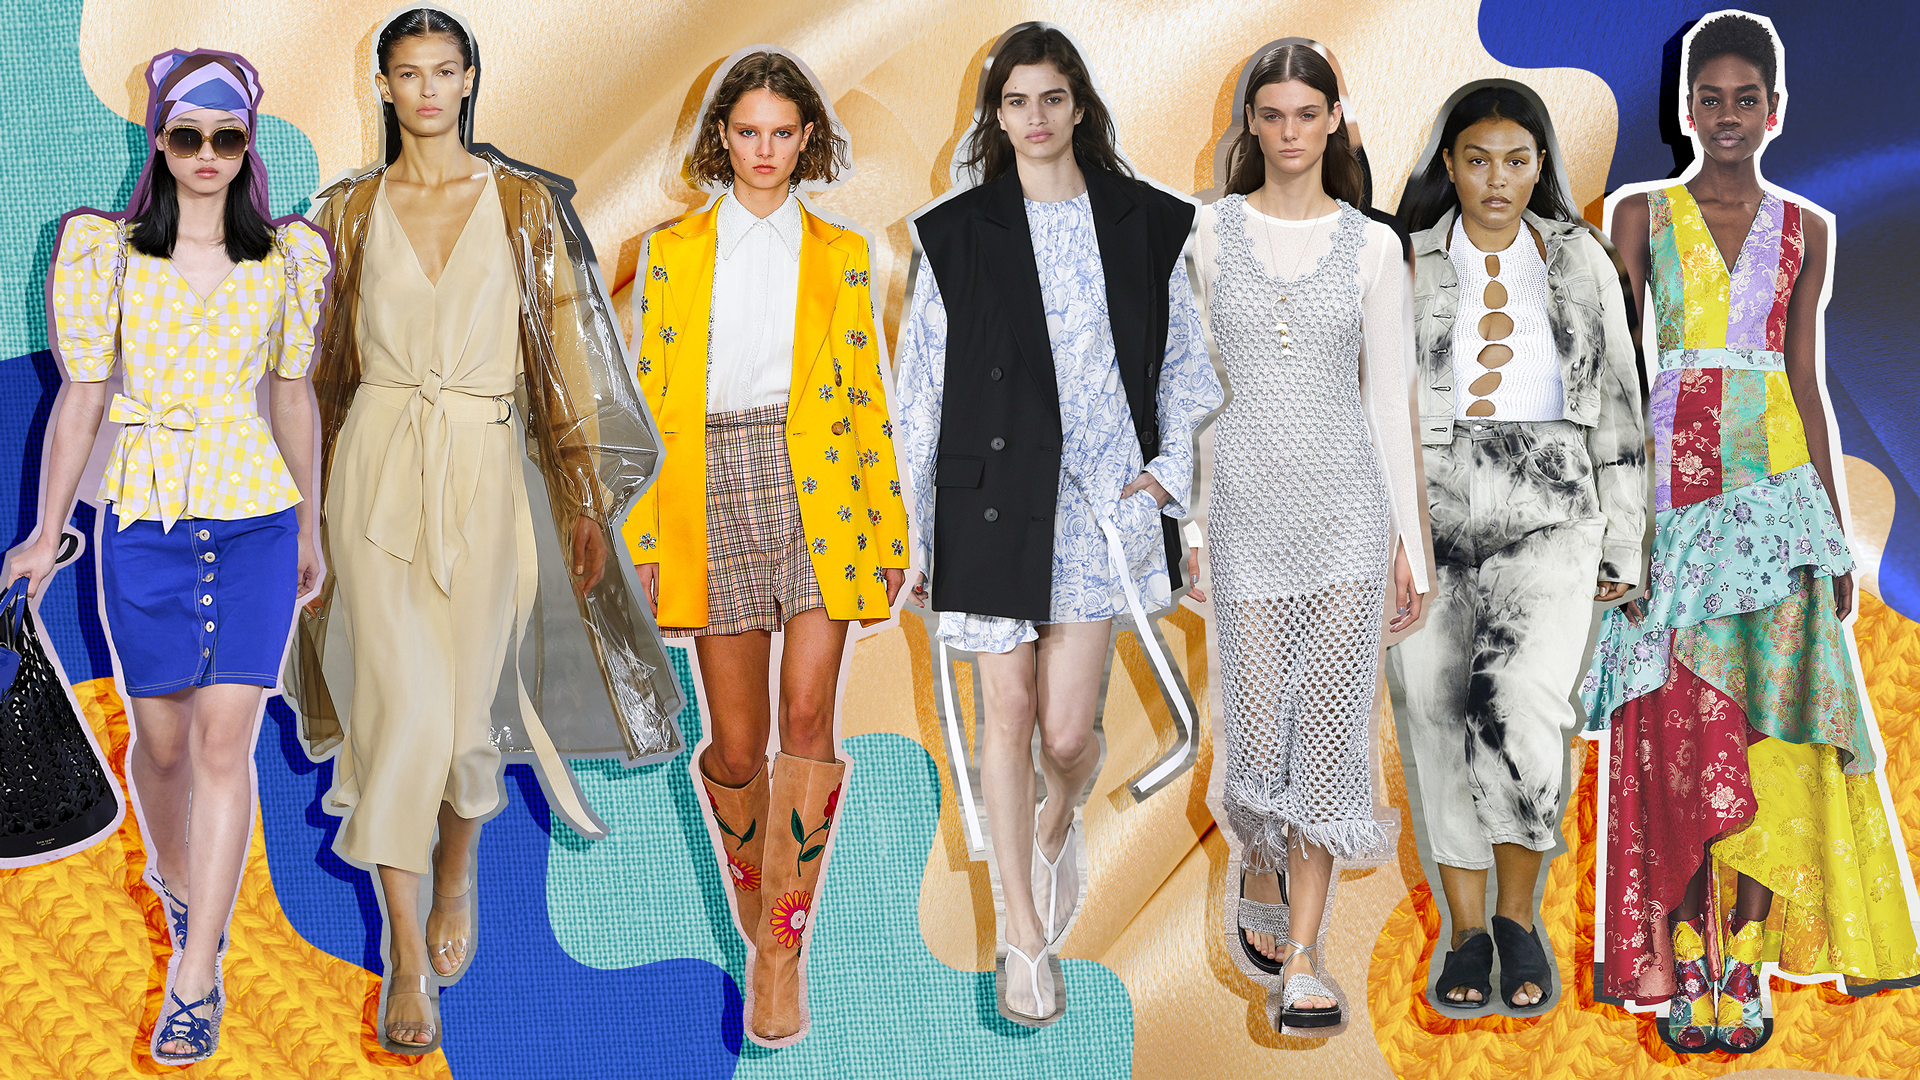 The Top 10 Trends From New York Fashion Week 2018 New York Fashion Week 2018 New York Fashion Week Fashion Week Trends